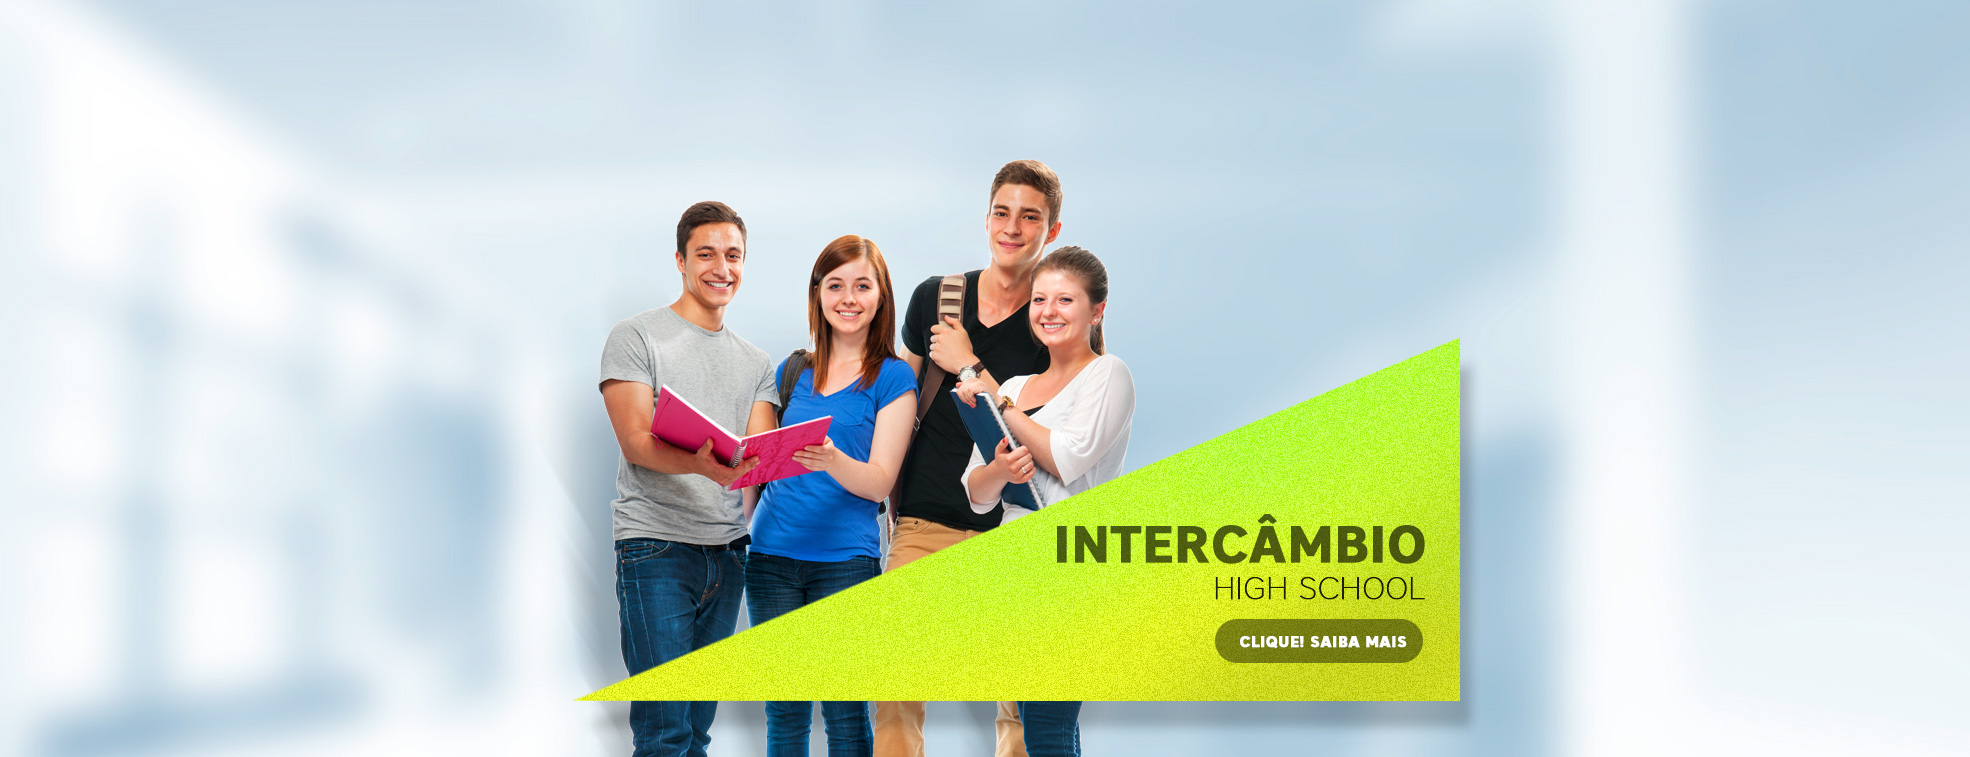 intercambio-highschool